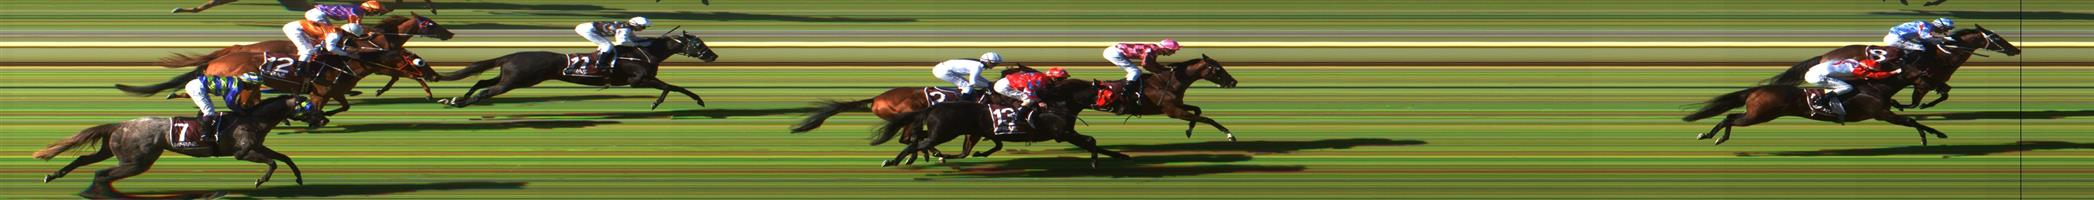 WODONGA Race 1 No. 7 Tormino @ $6 (1 UNIT WIN)  Result: Non Qualifier - Unplaced at SP $9.50